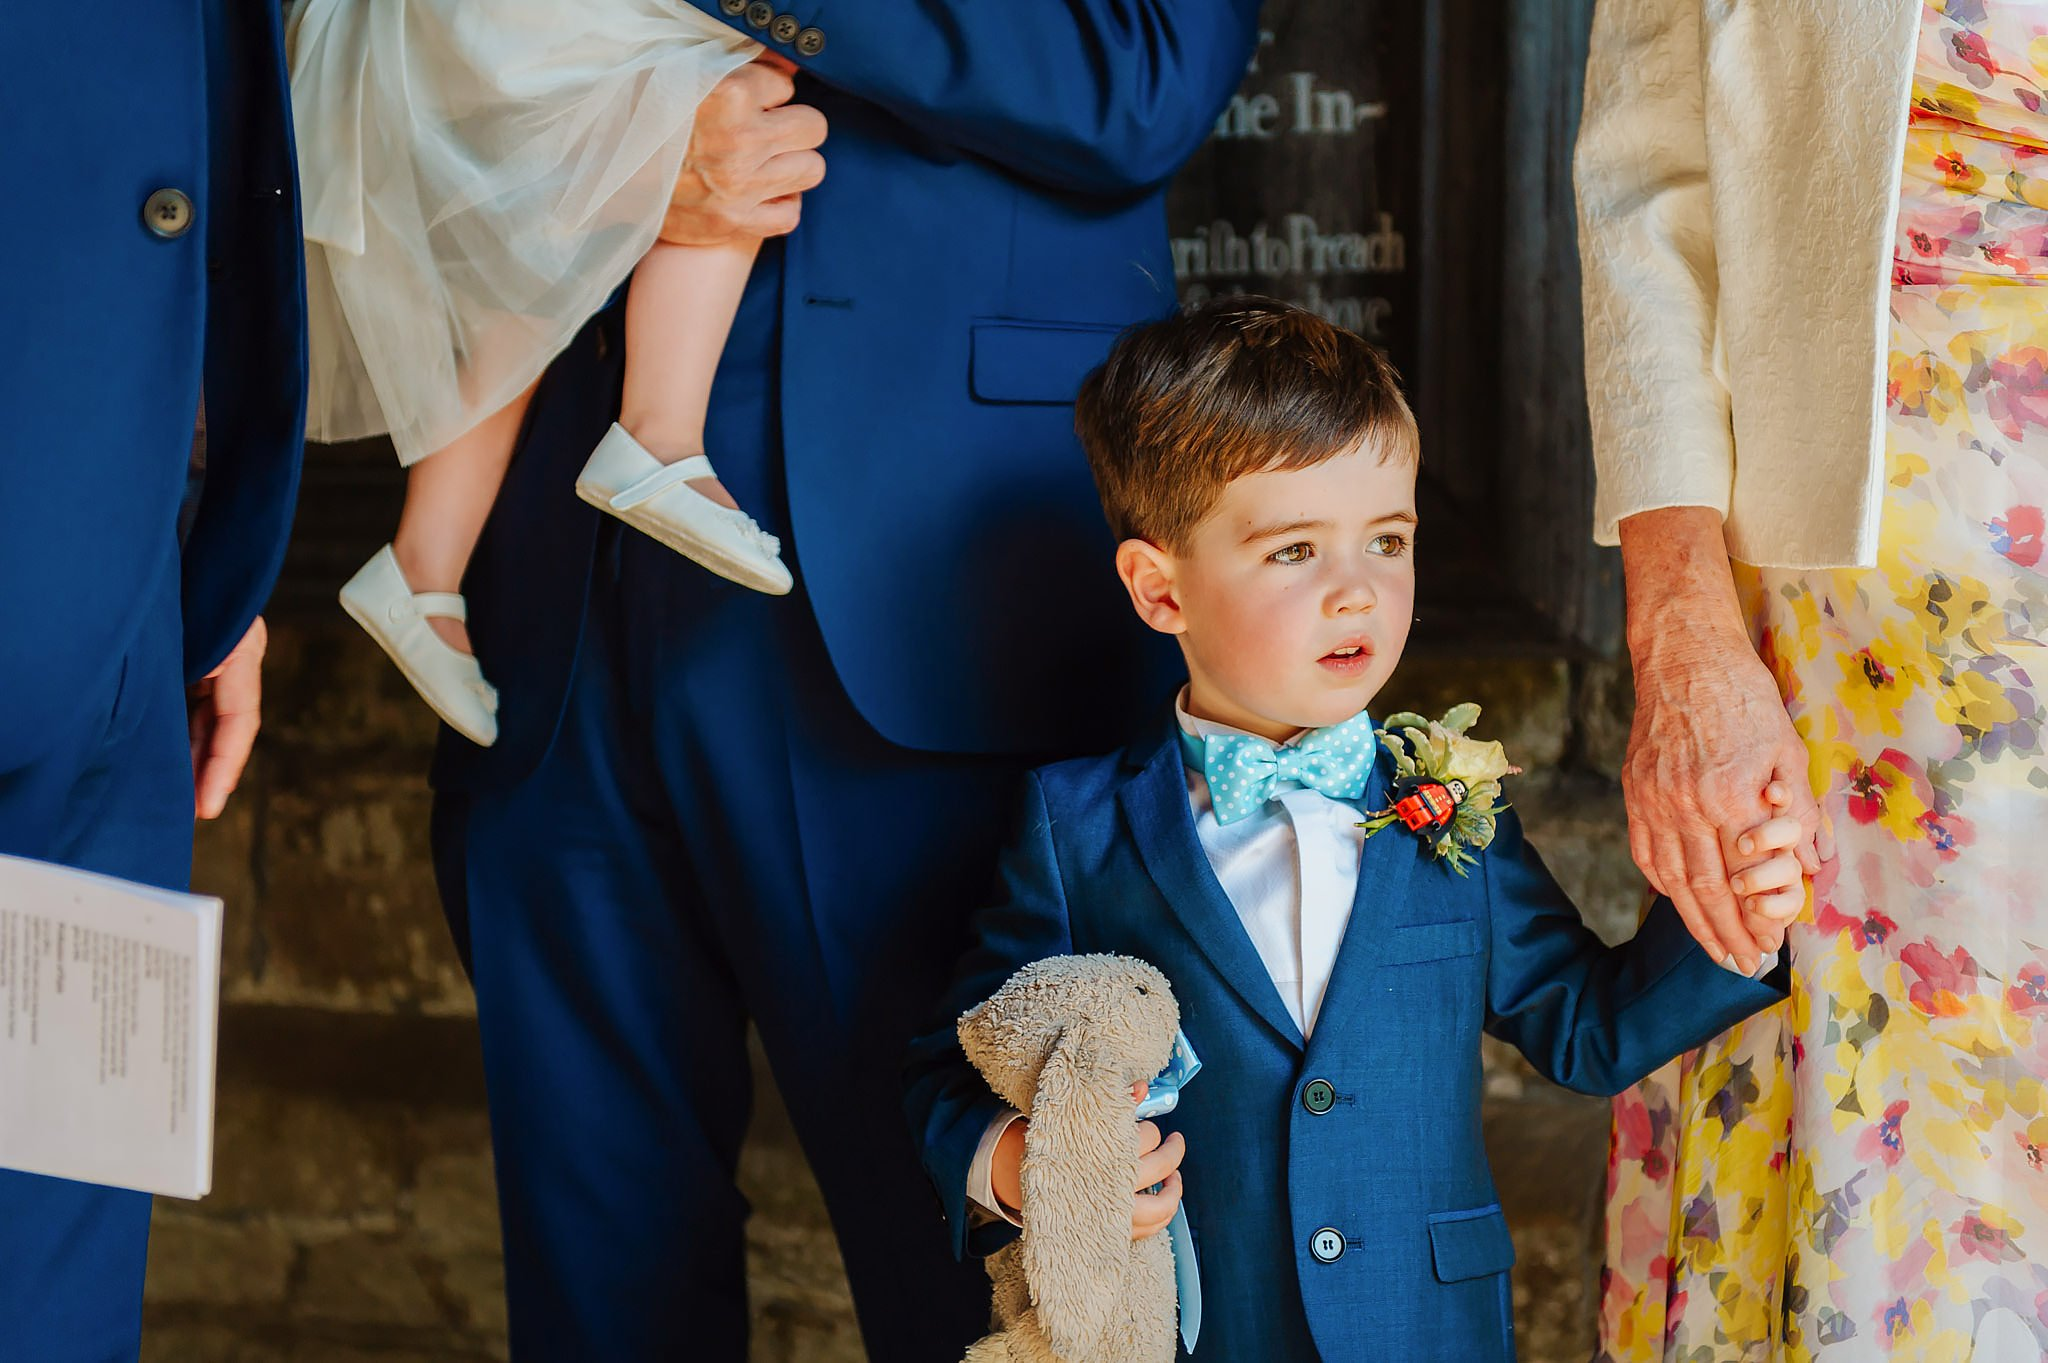 Wedding photography at Hellens Manor in Herefordshire, West Midlands | Shelley + Ian 24